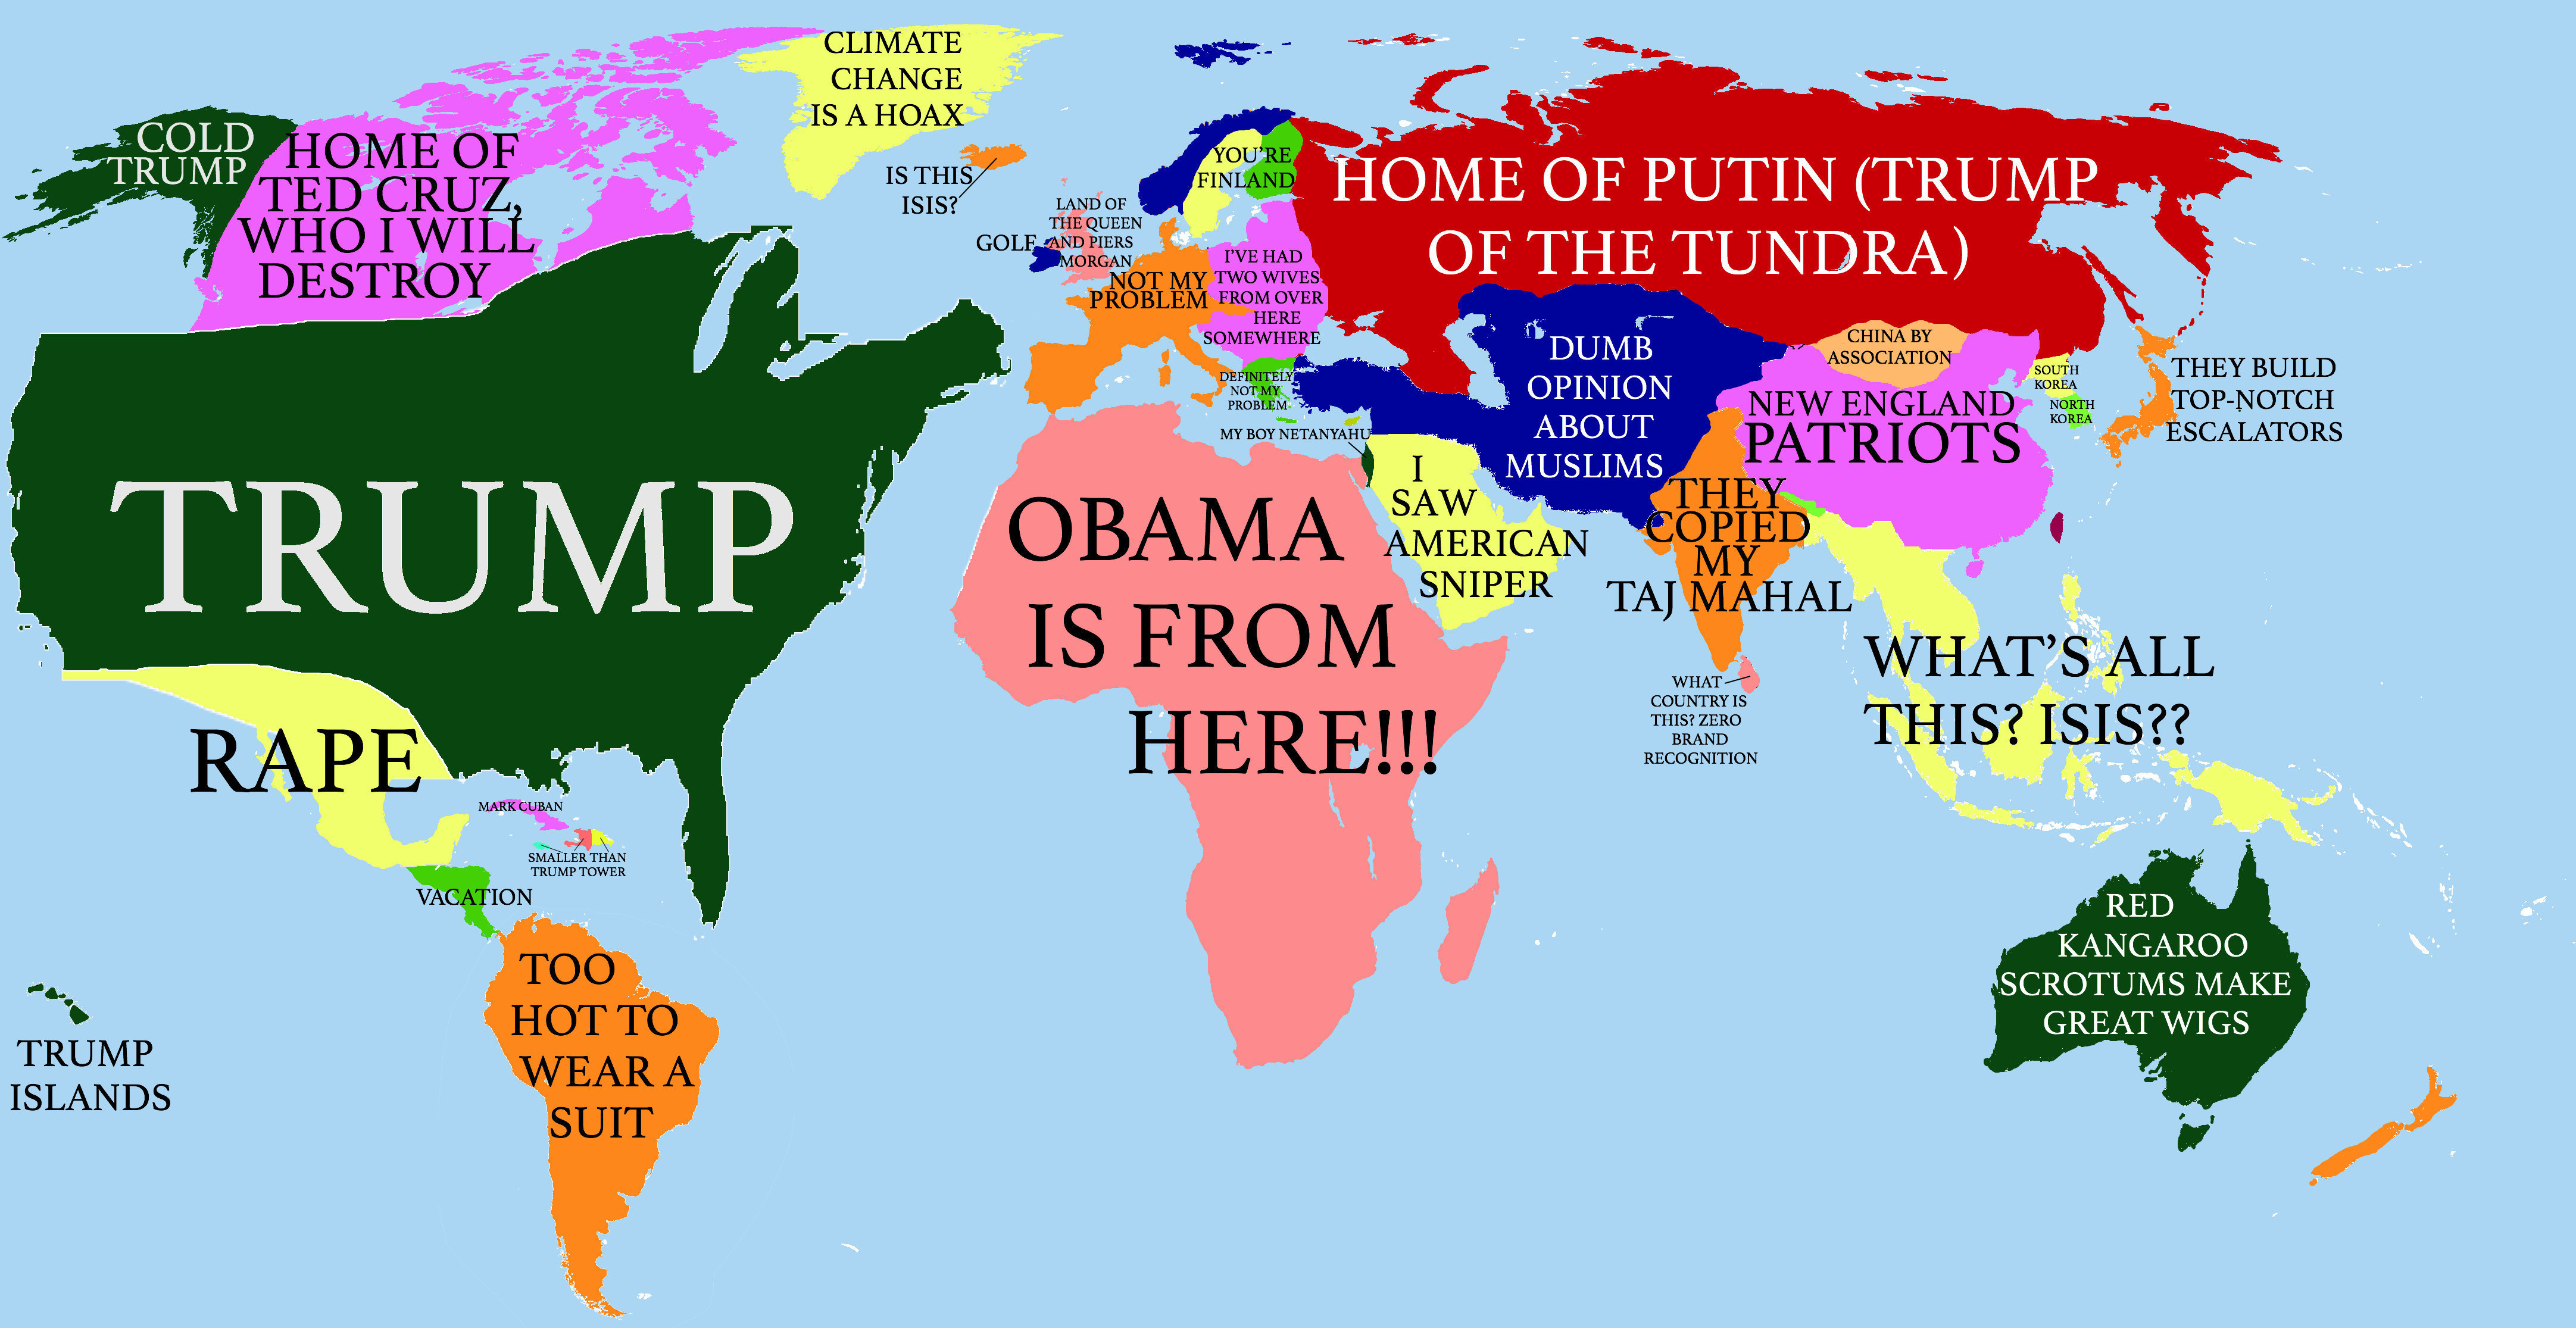 fbd8037cb This World-according-to-Trump map is quite clever (January 15, 2018 update:  The previous link no longer works, so I've inserted another version).